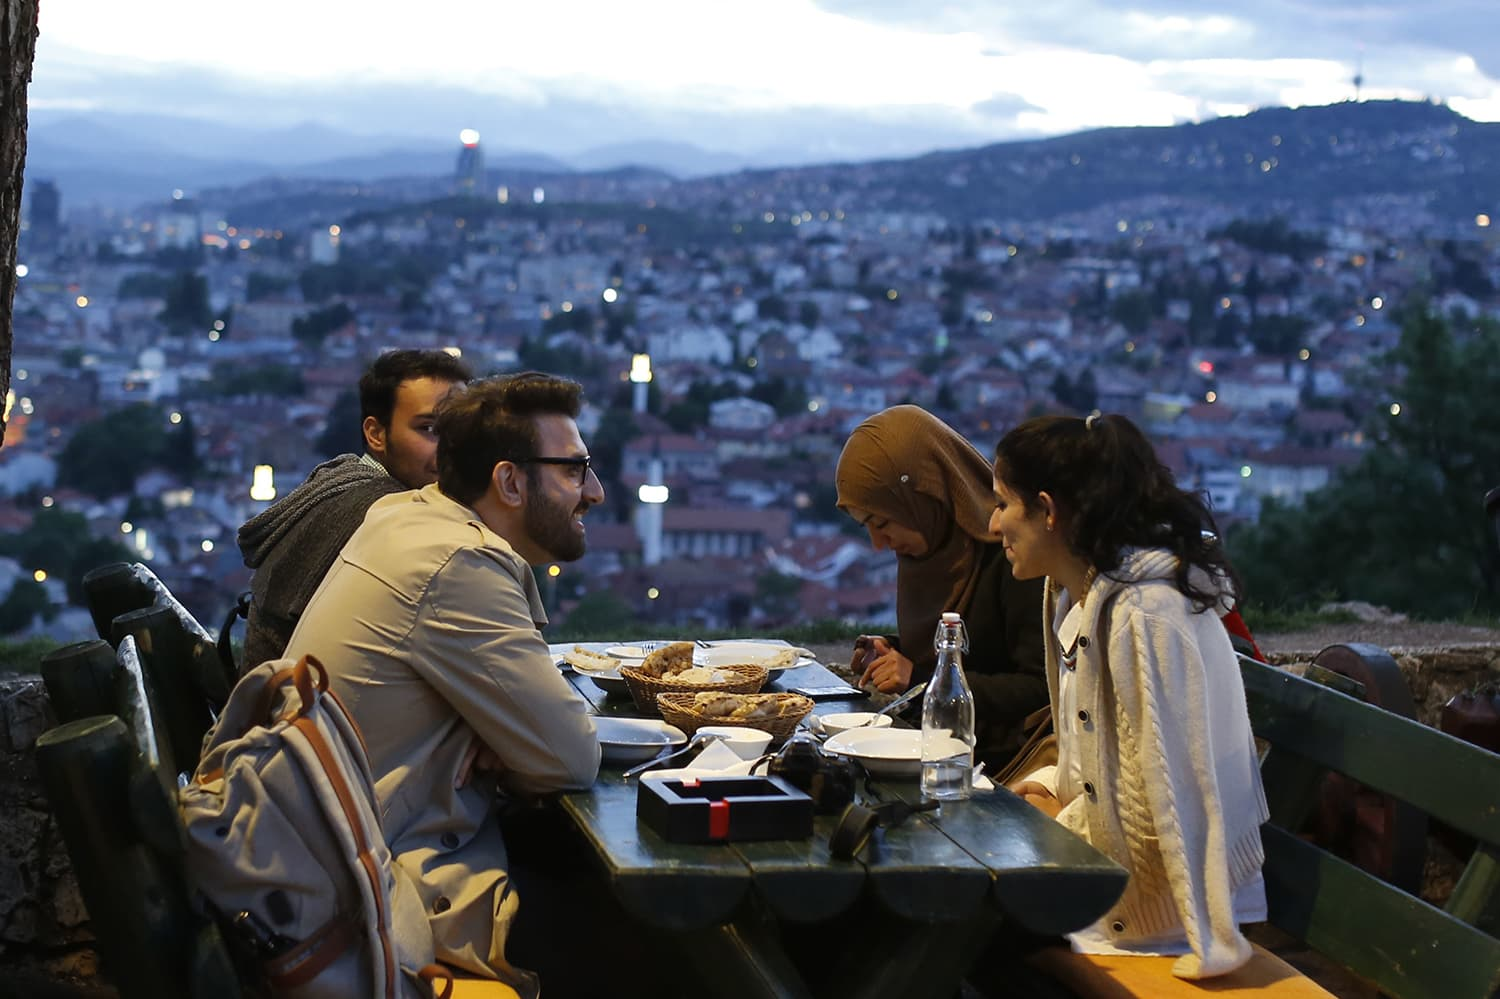 A group of people break their fast on the first day of the fasting month of Ramazan, on an old fortress overlooking the historic center of Sarajevo, Bosnia. — AP